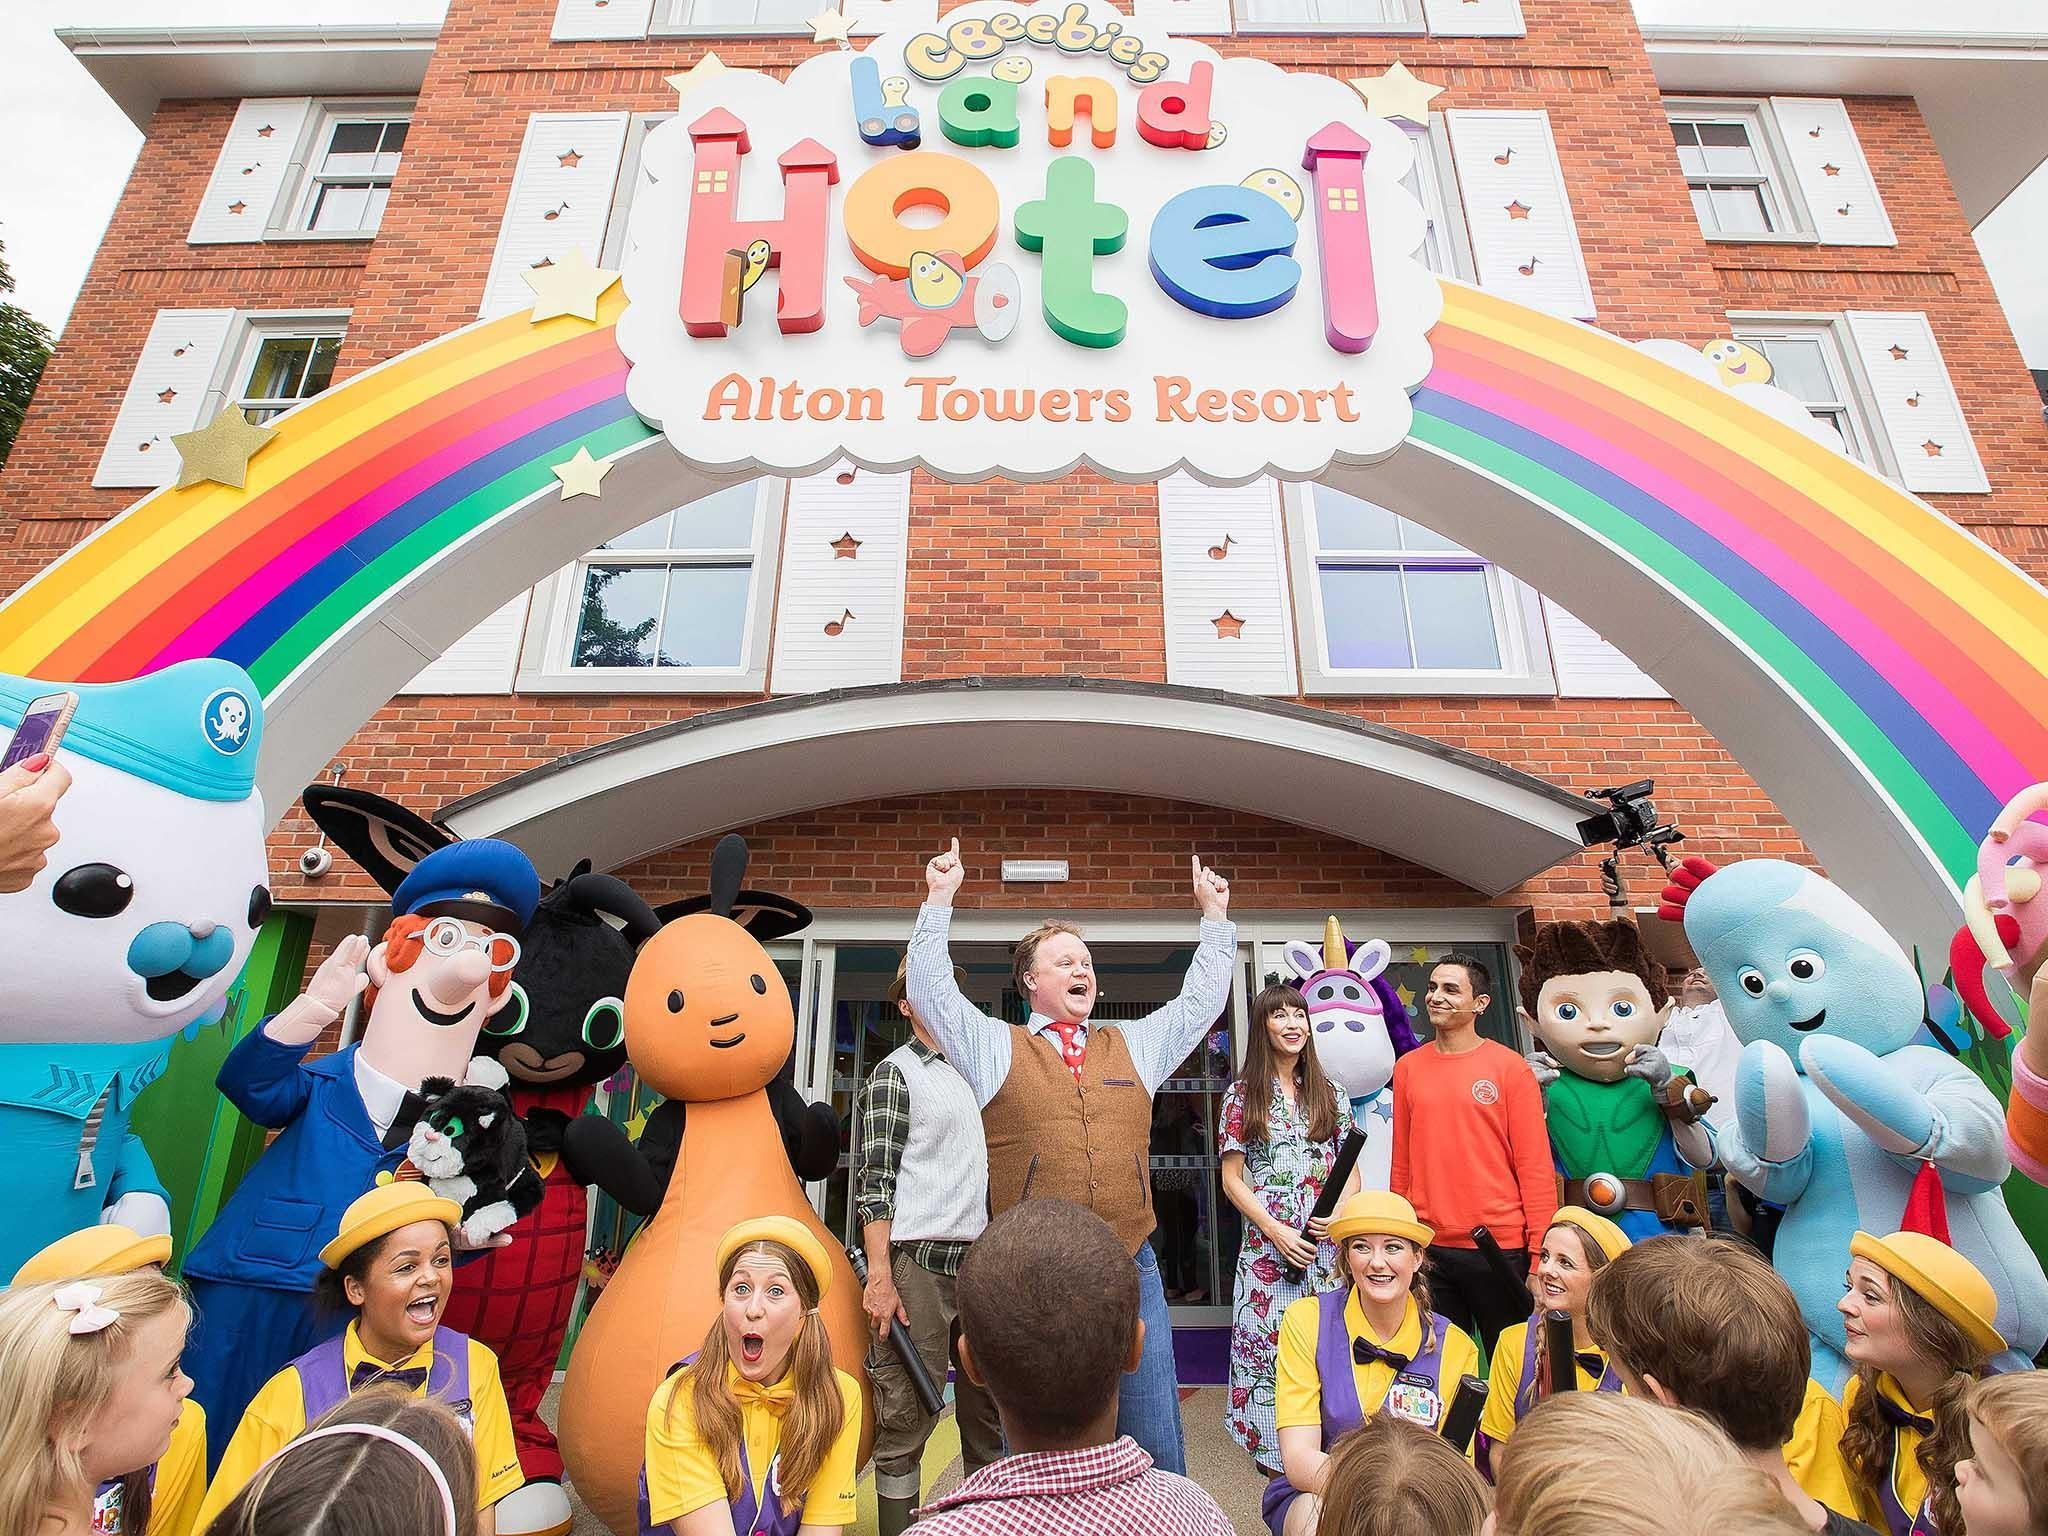 Http www alton towers co uk pages theme park - Cbeebies Land Hotel Review Inside Alton Towers Kid Friendly Hotel The Independent